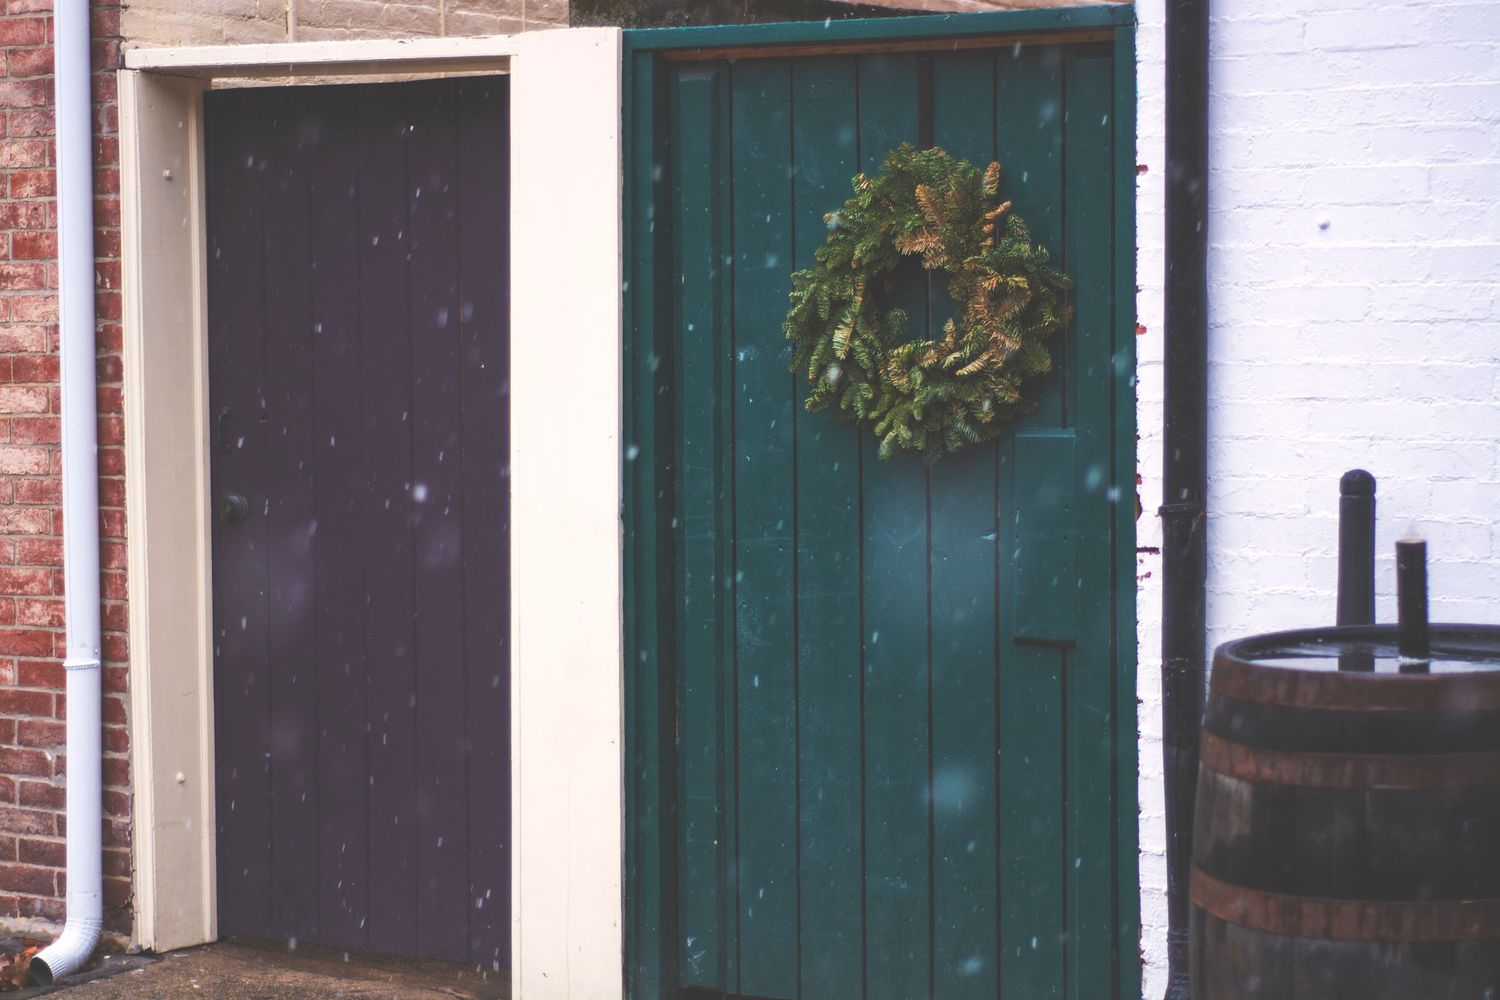 Wooden doors are decorated for Christmas.